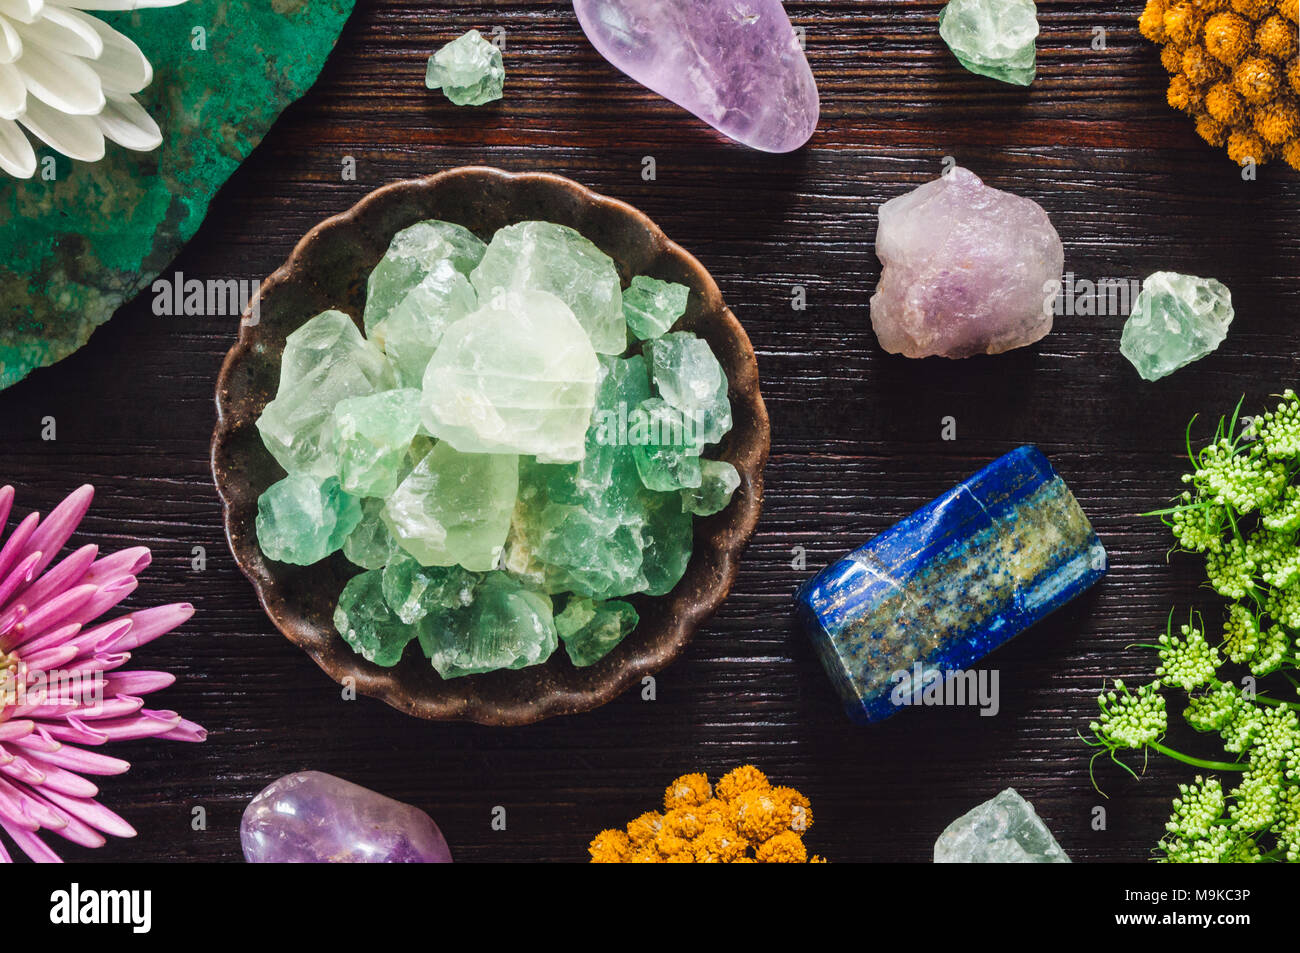 Stones of Pisces including, Amethyst, Flourite, Lapis Lazuli and Turquoise - Stock Image